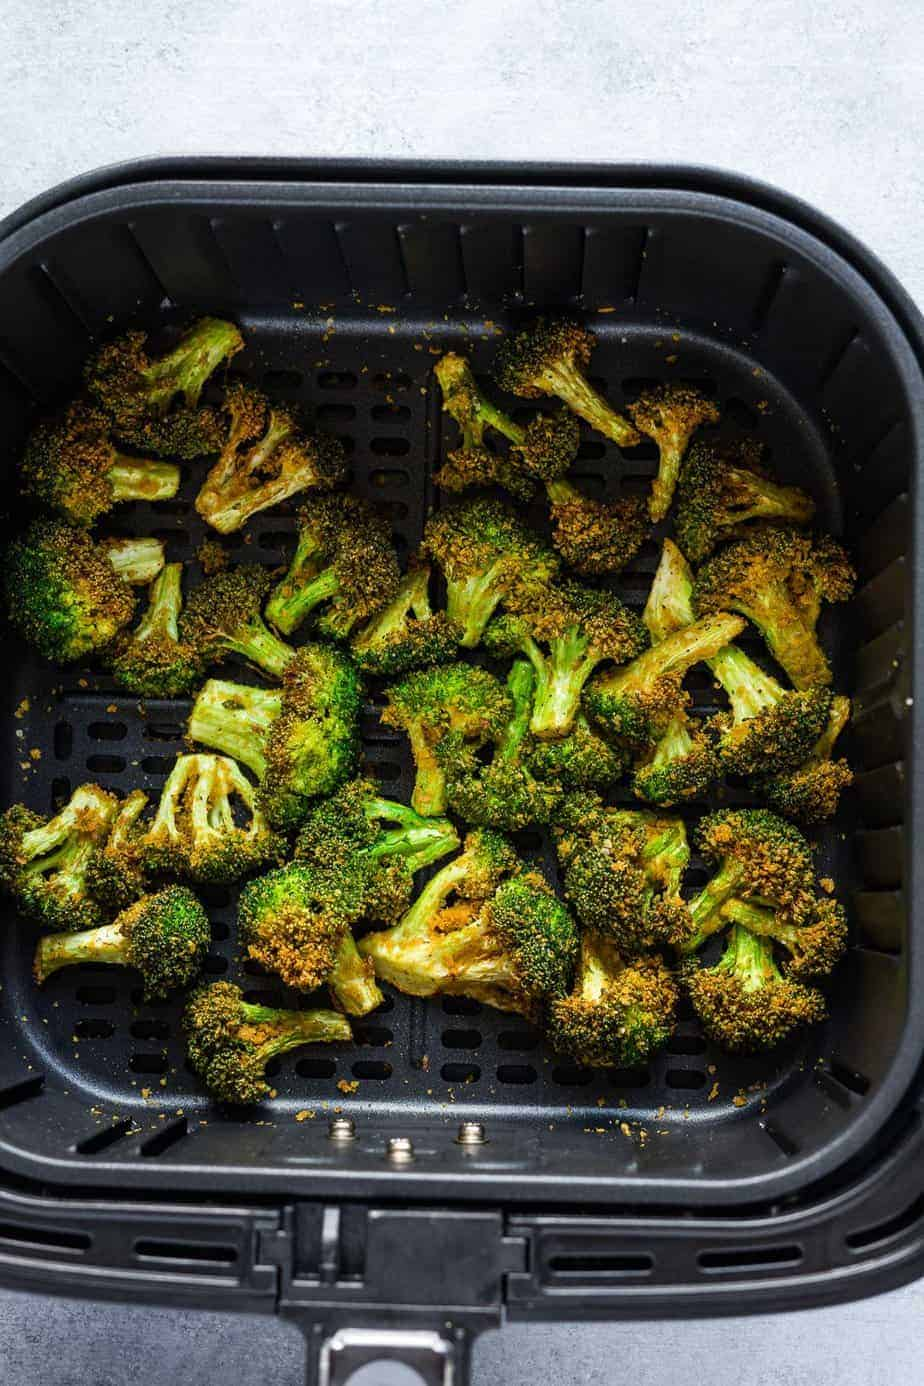 crispy air fryer broccoli inside the air fryer basket